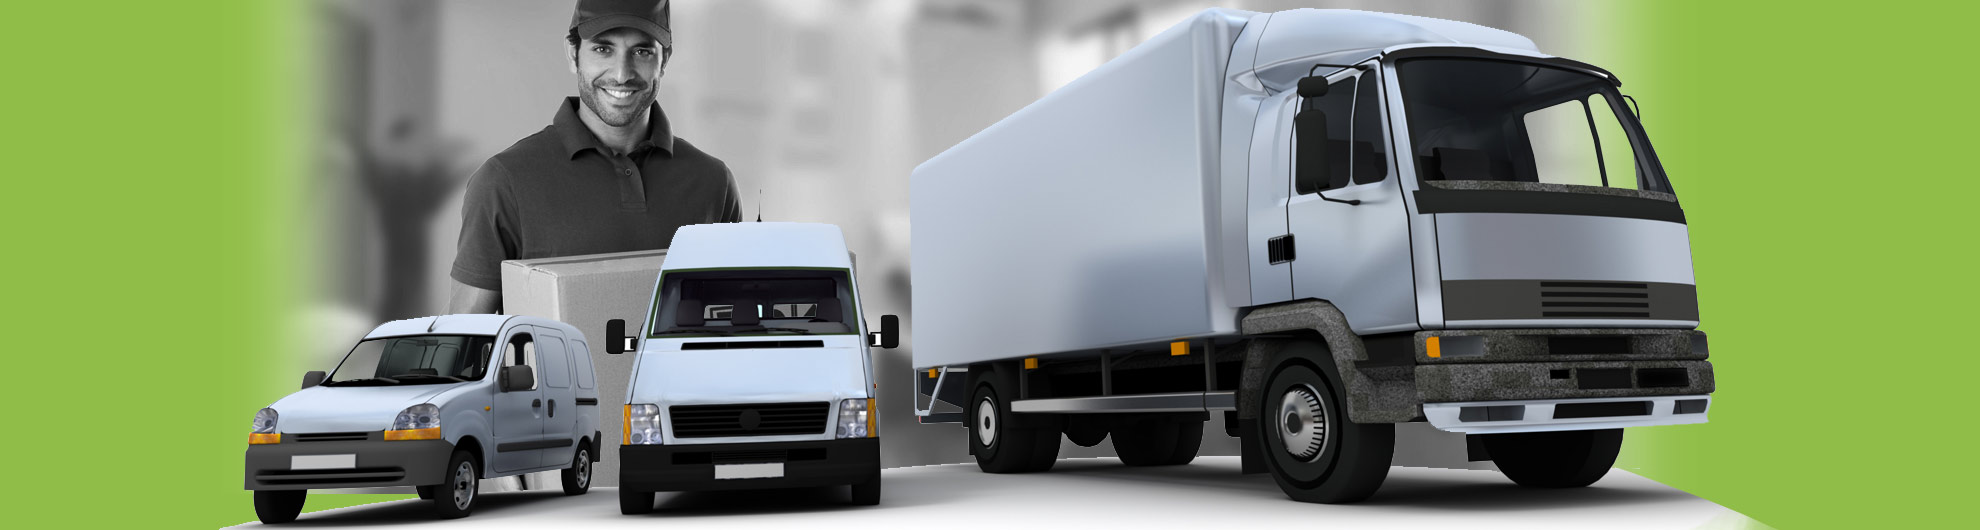 Foligno  International Movers - Shipping Companies